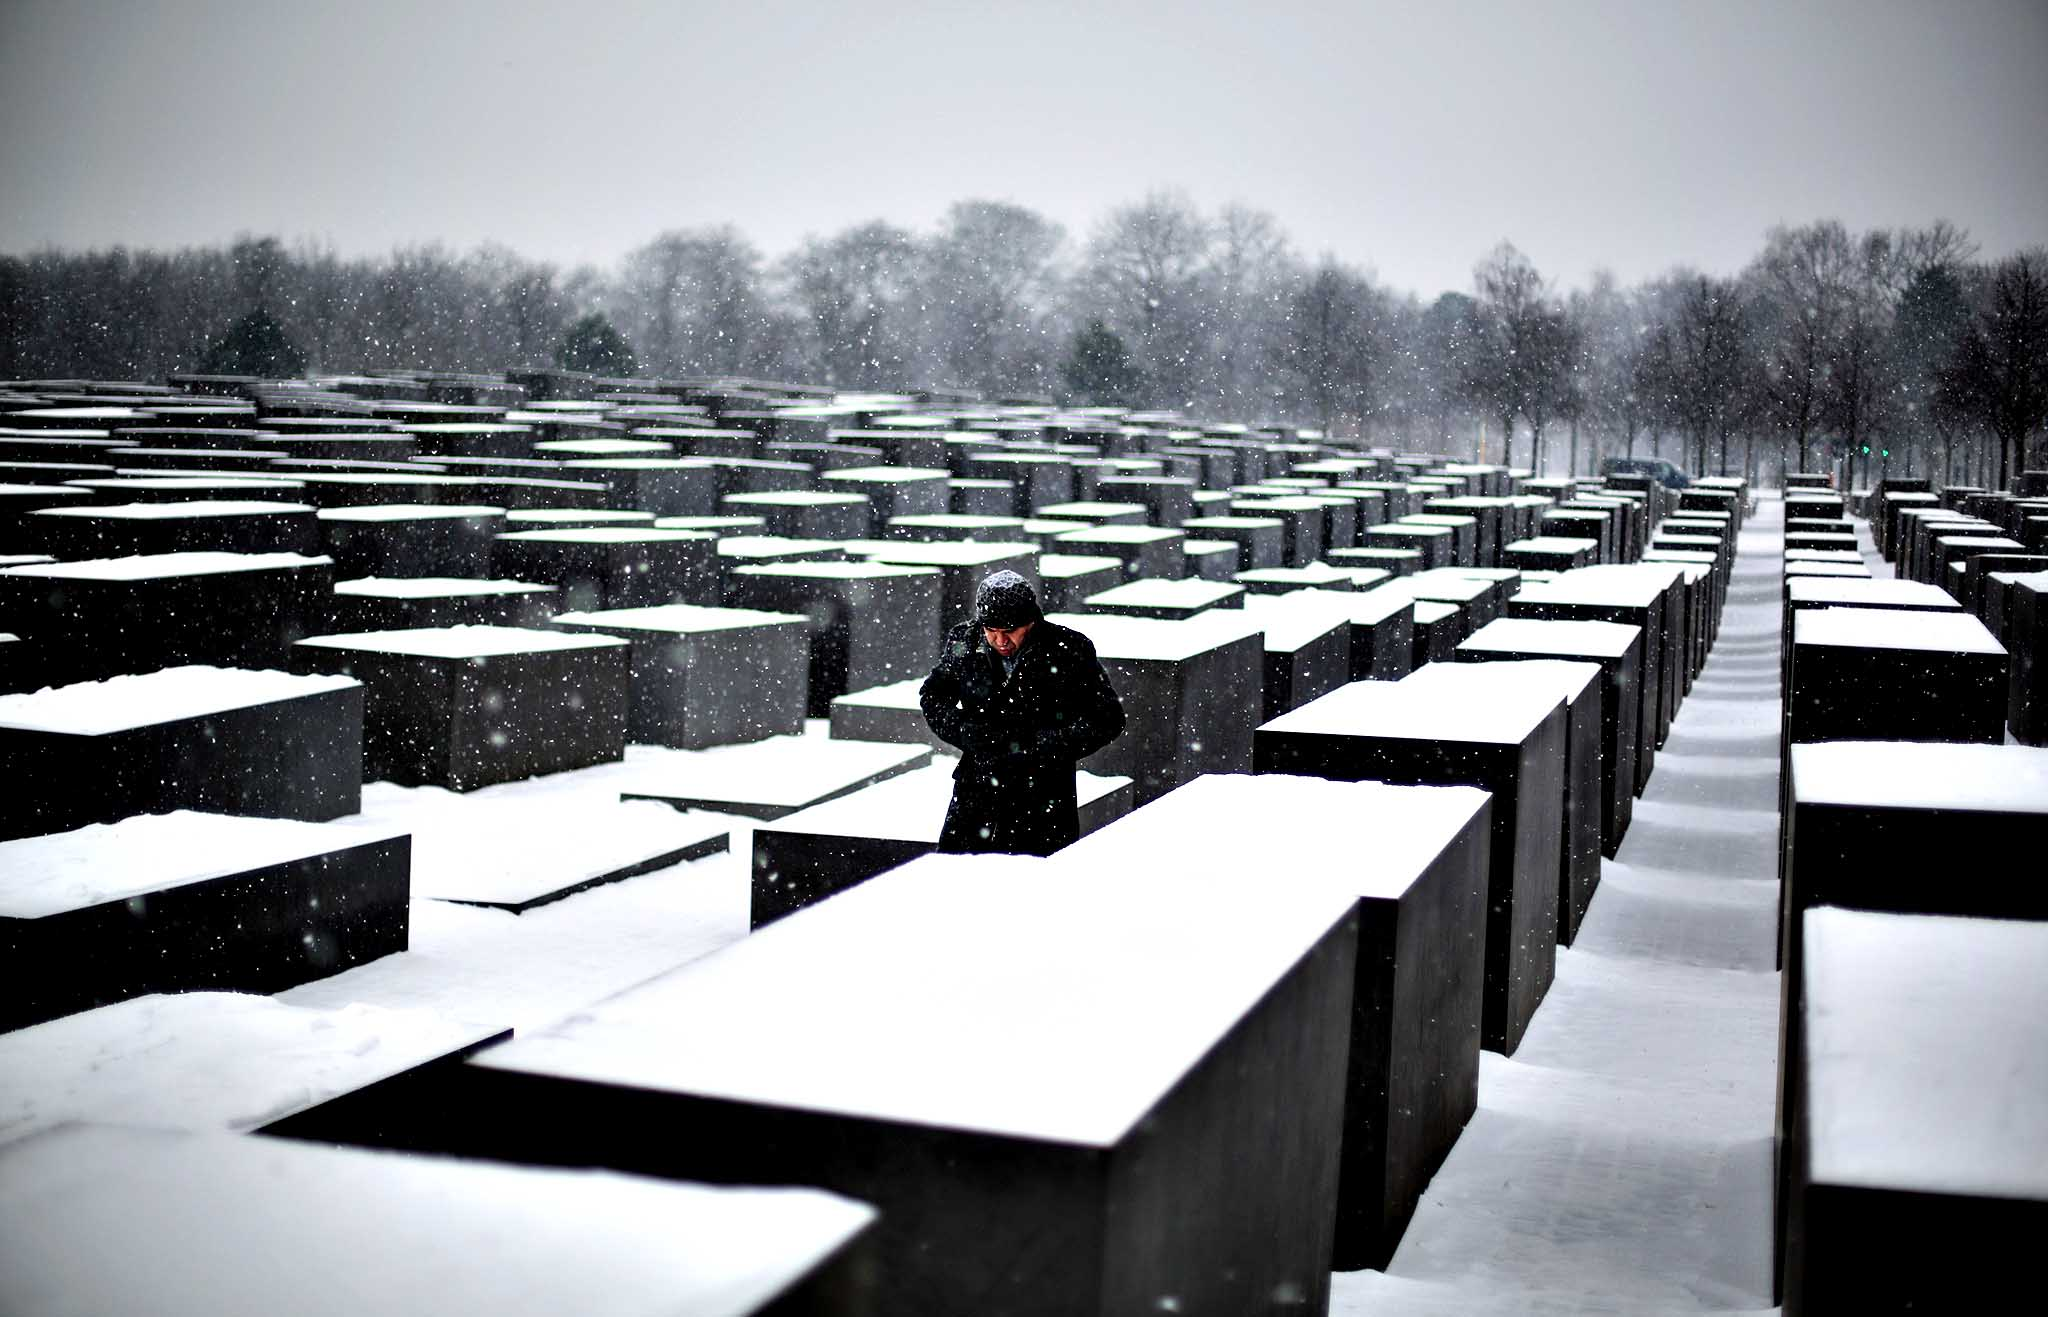 A man visits the snow covered Holocaust Memorial at the International Holocaust Remembrance Day in Berlin, Monday, Jan. 27, 2014. The German parliament Bundestag will hold a special remembrance session at the Reichstag building in commemoration of the liberation of the Auschwitz death camp on Jan. 27, 1045.